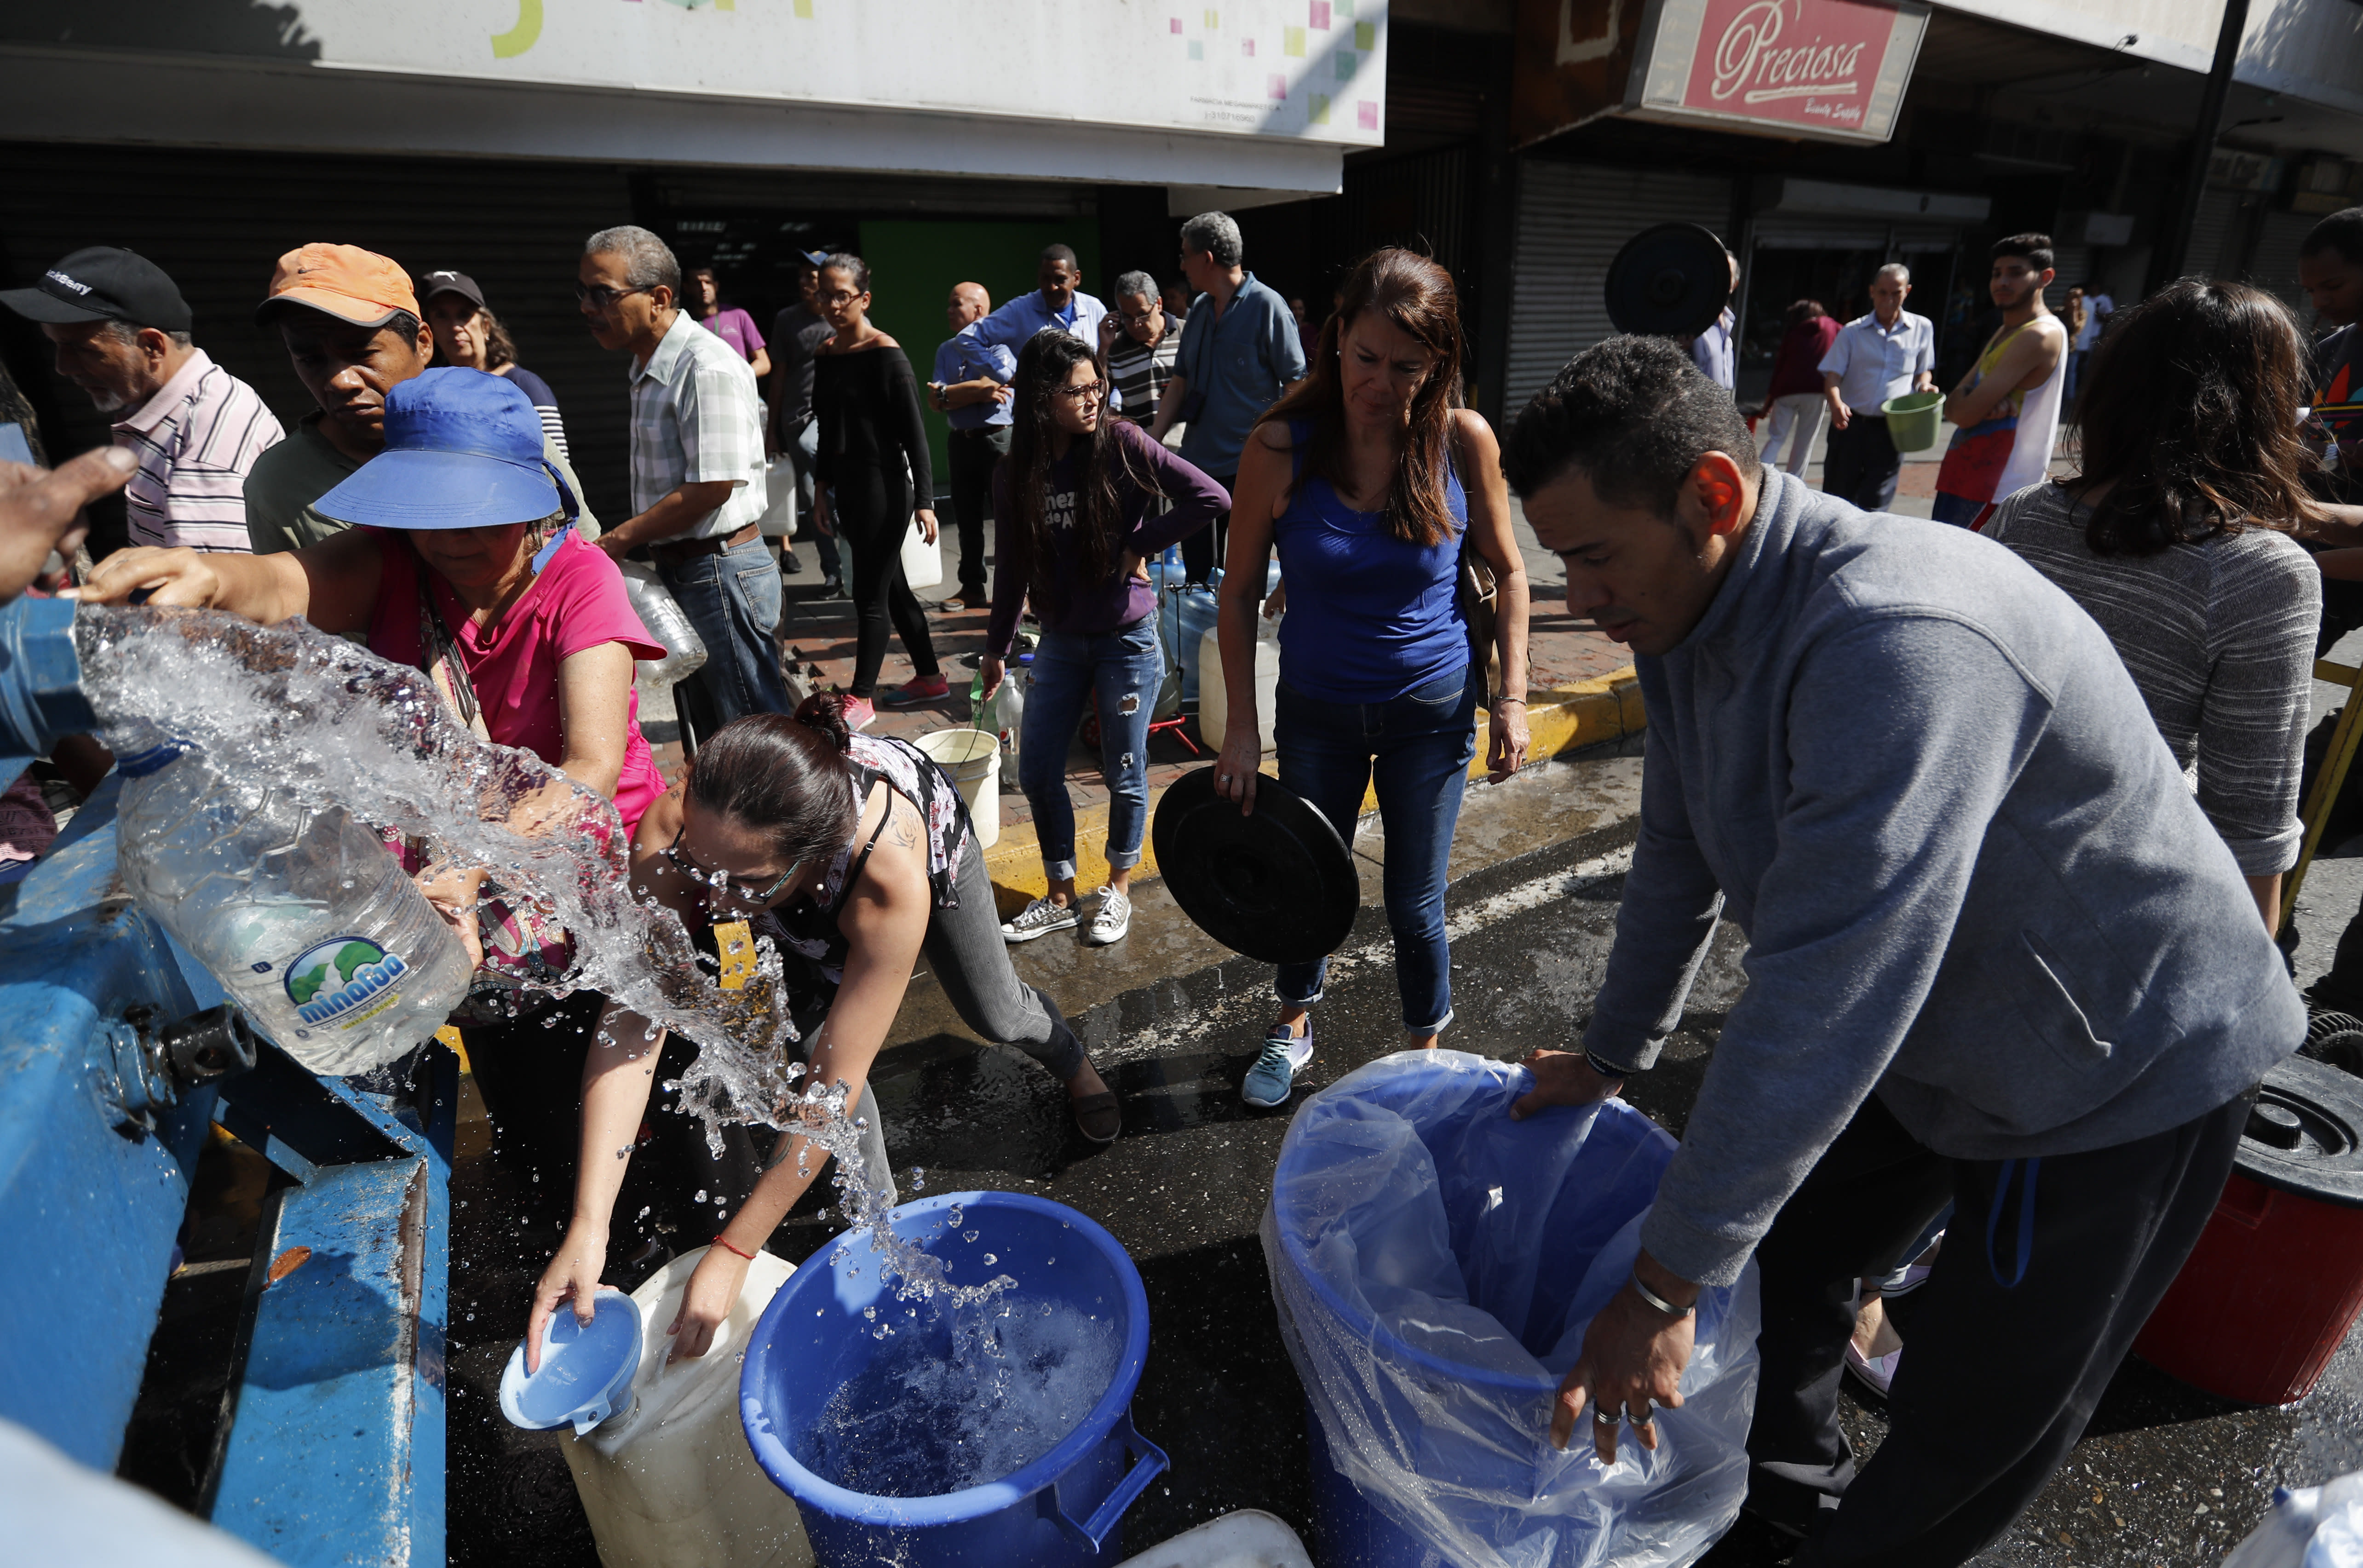 People collect water from a truck that delivers water during rolling blackouts, in Caracas, Venezuela, Tuesday, March 12, 2019. The blackout marked another harsh blow to a country paralyzed by turmoil as the power struggle between Venezuelan President Nicolas Maduro and opposition leader Juan Guaido stretches into its second month and economic hardship grows. (AP Photo/Eduardo Verdugo)